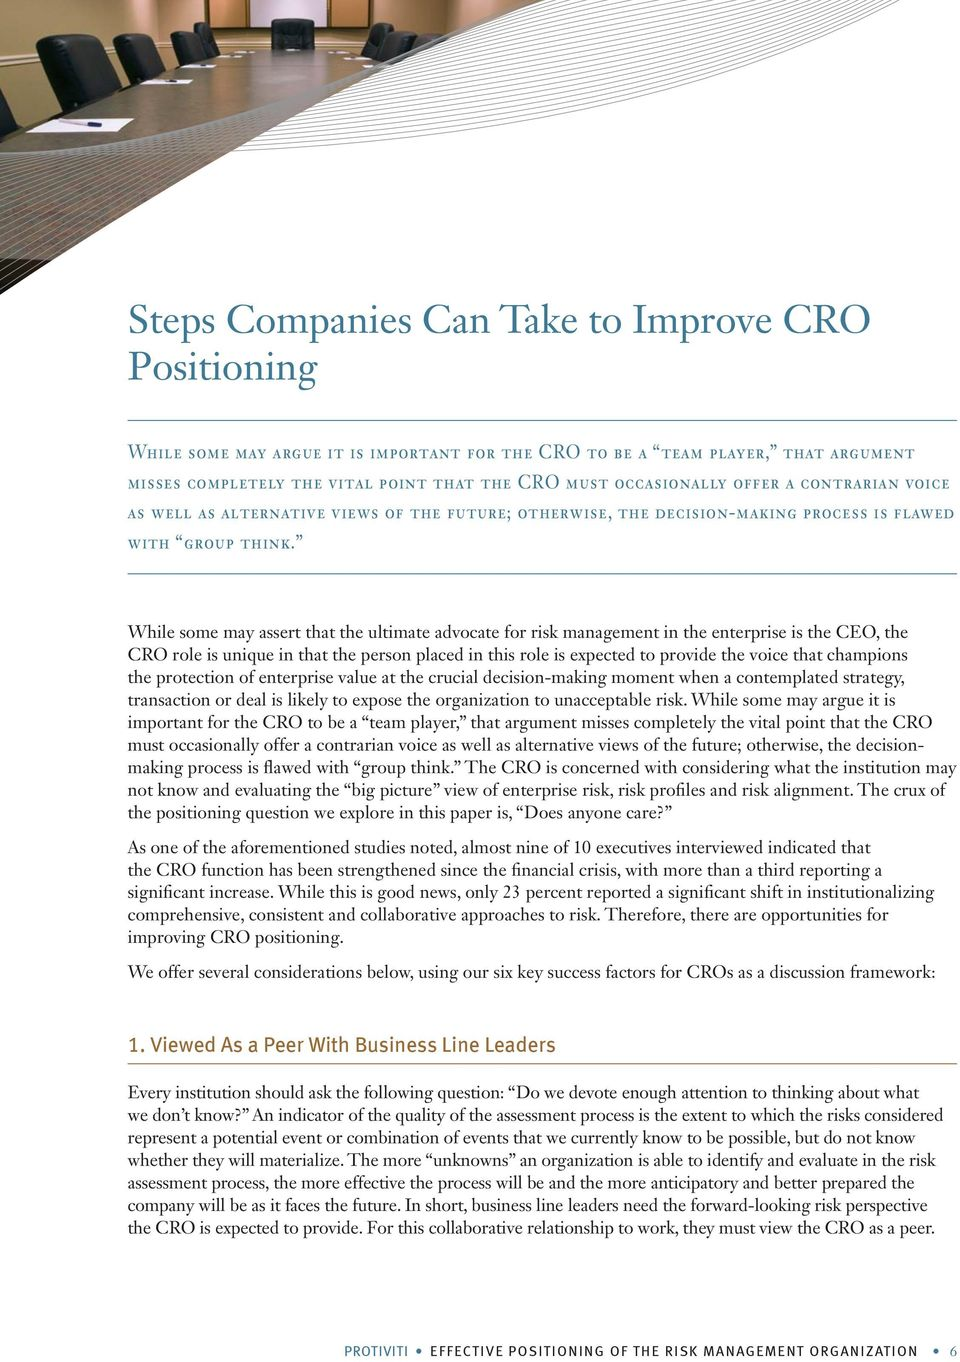 While some may assert that the ultimate advocate for risk management in the enterprise is the CEO, the CRO role is unique in that the person placed in this role is expected to provide the voice that